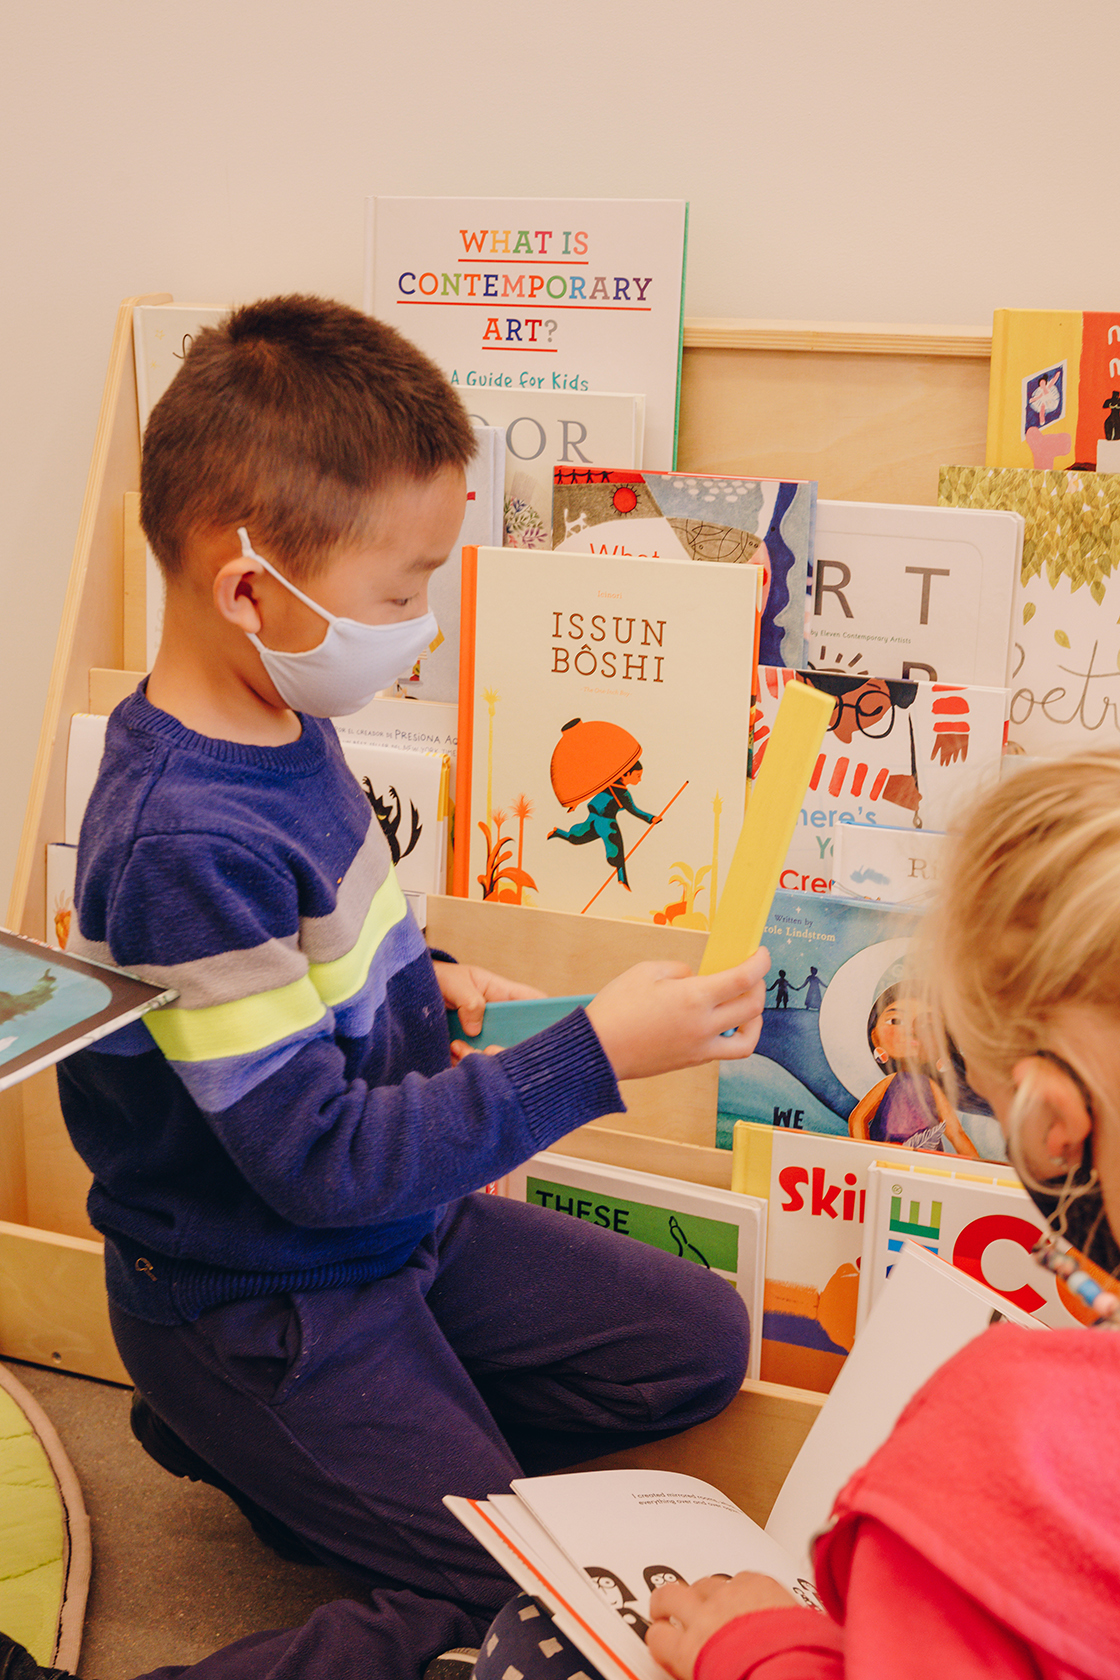 A child in a blue sweater and mask looks at books on a small shelf